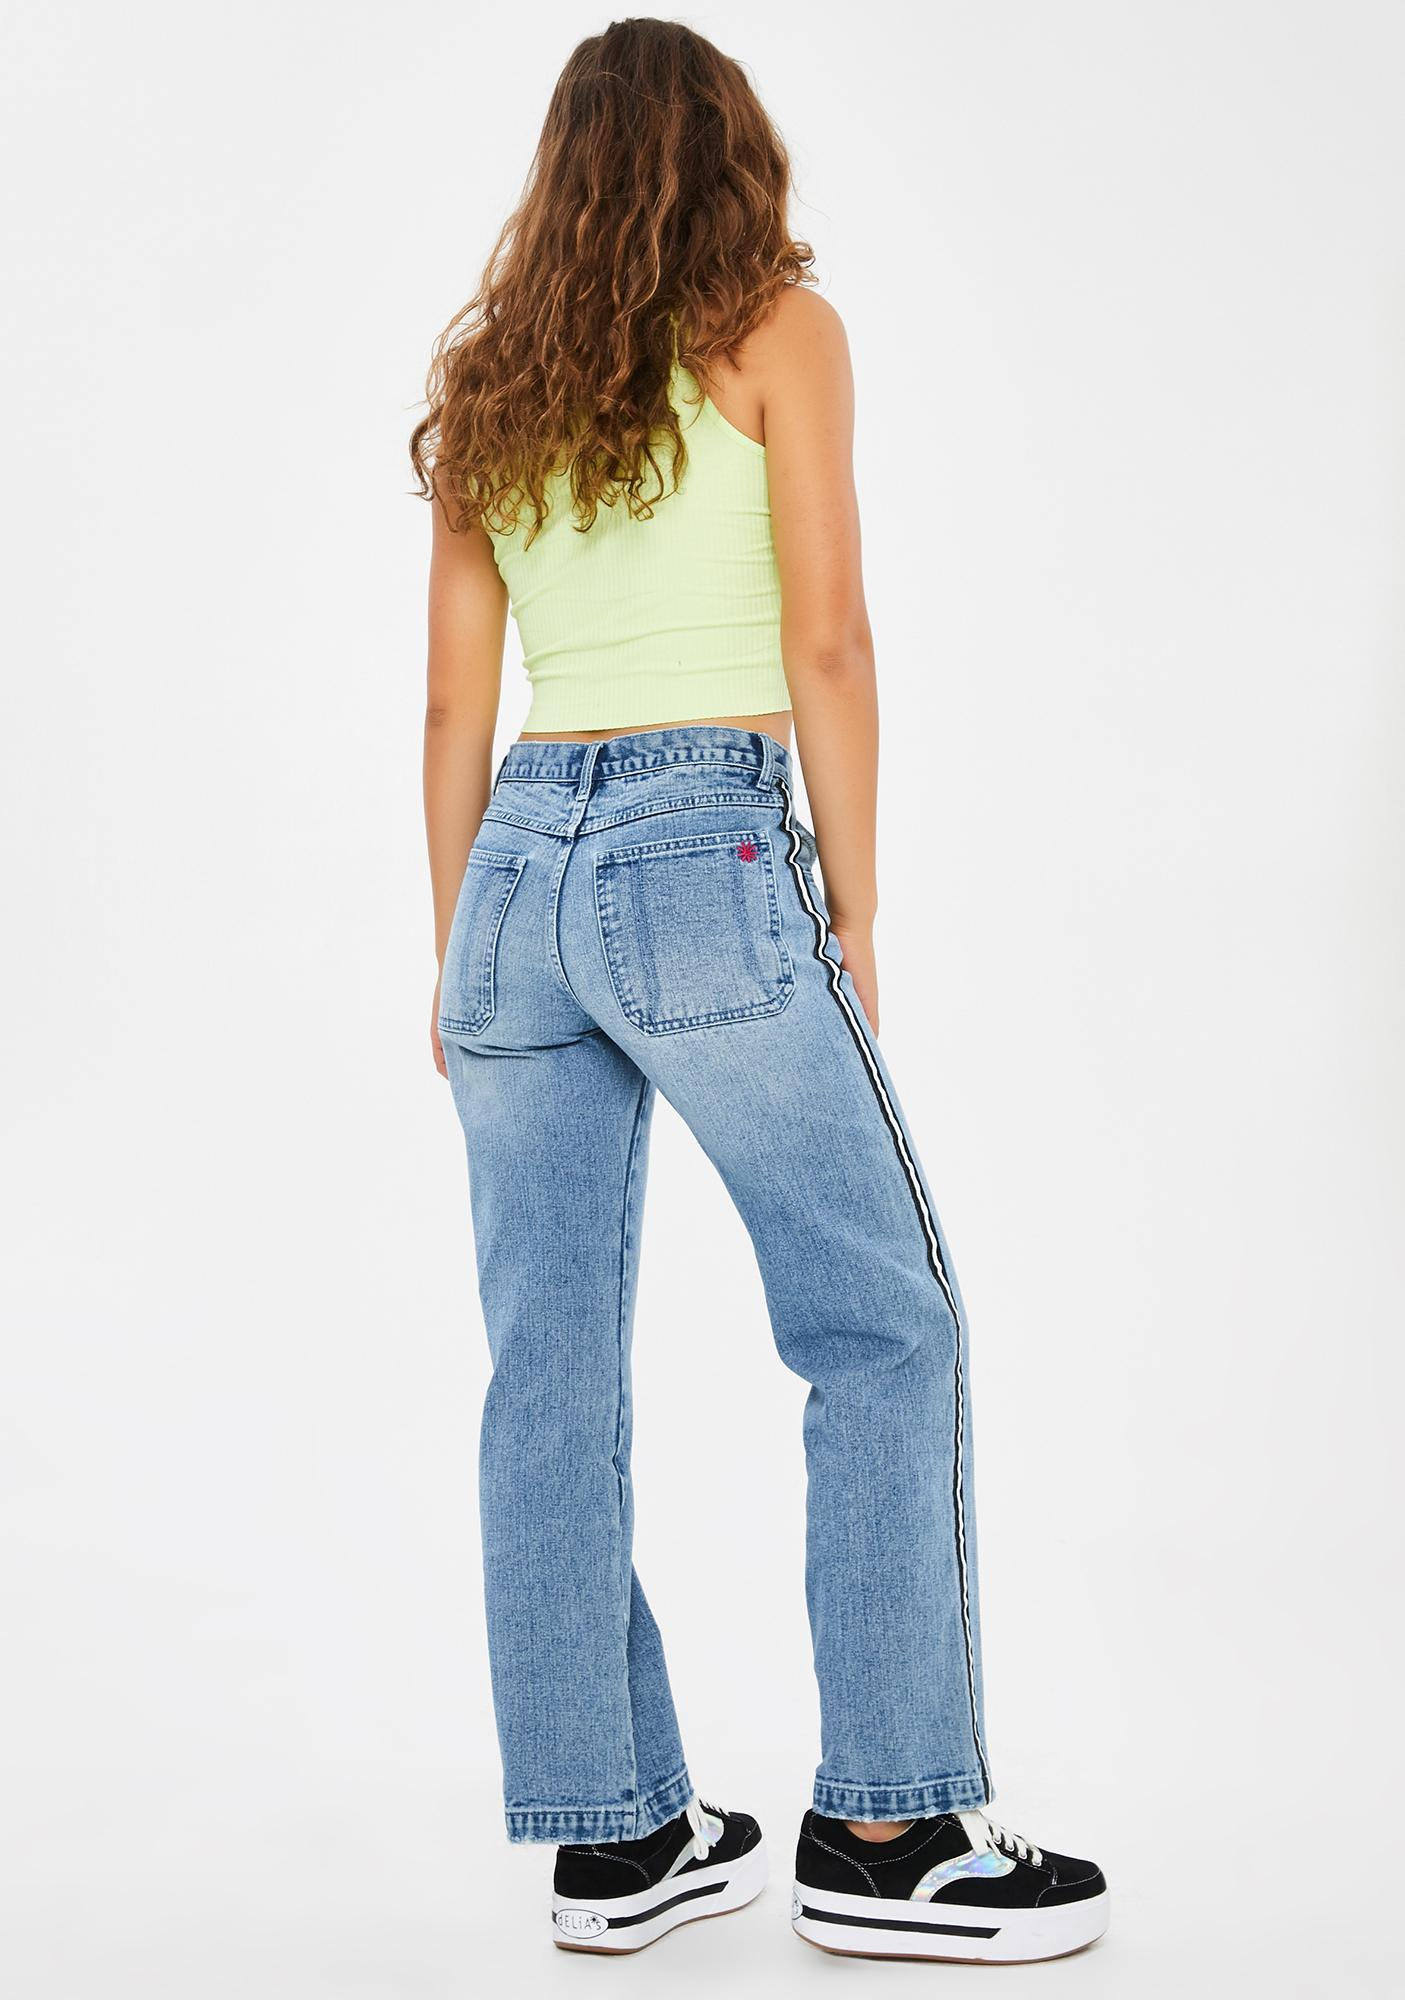 dELiA*s by Dolls Kill 90's Fever Wide Leg Jeans